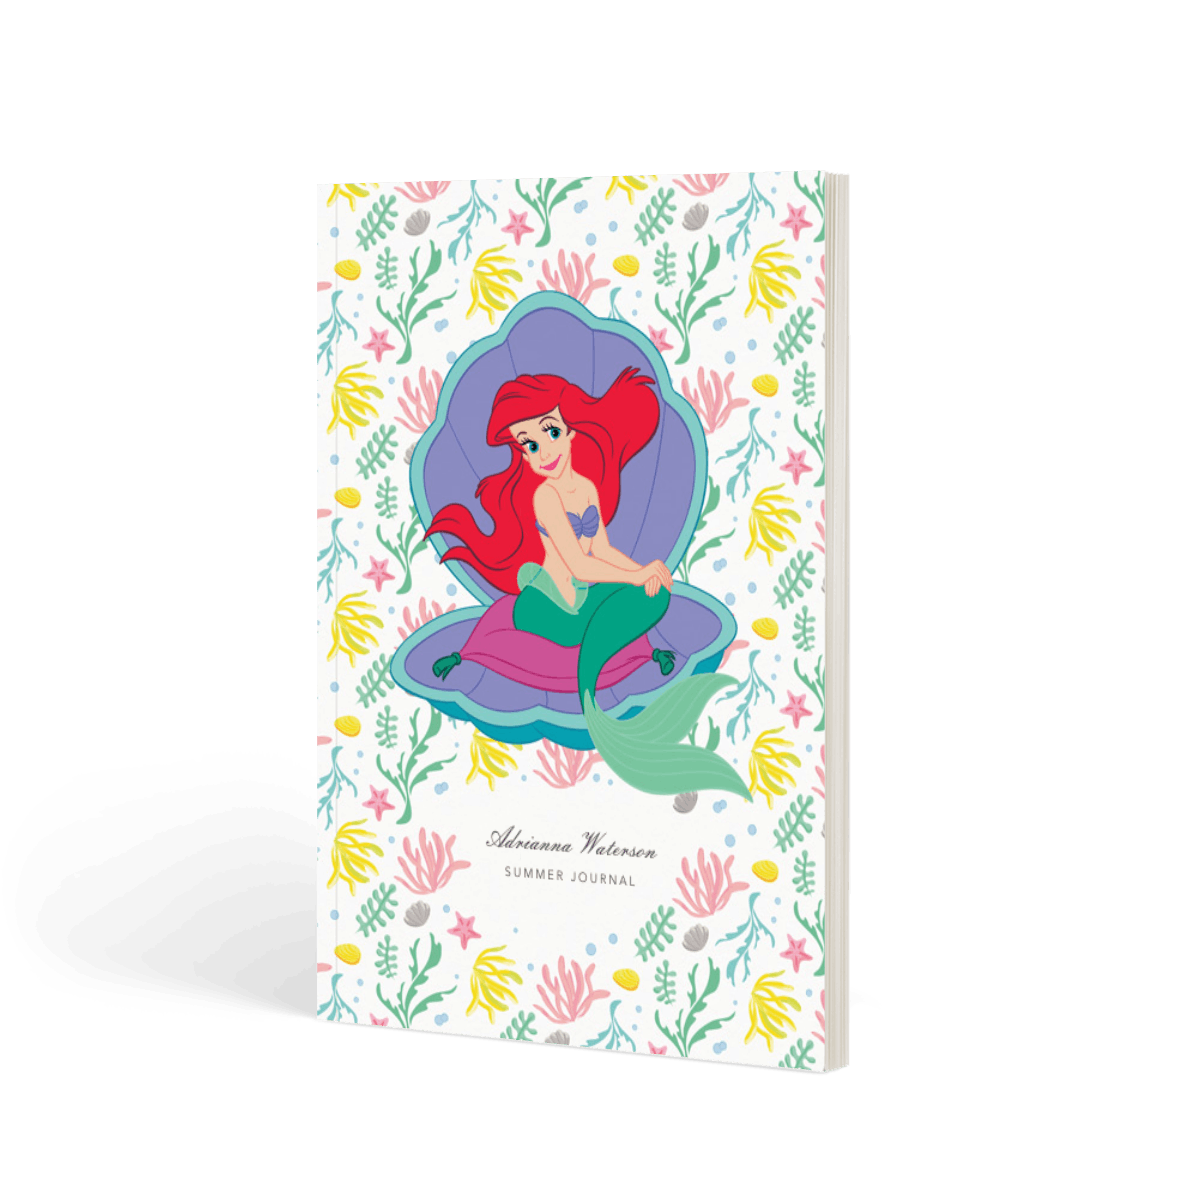 Https%3a%2f%2fwww.papier.com%2fproduct image%2f54120%2f6%2fthe little mermaid 13018 front 1570129021.png?ixlib=rb 1.1